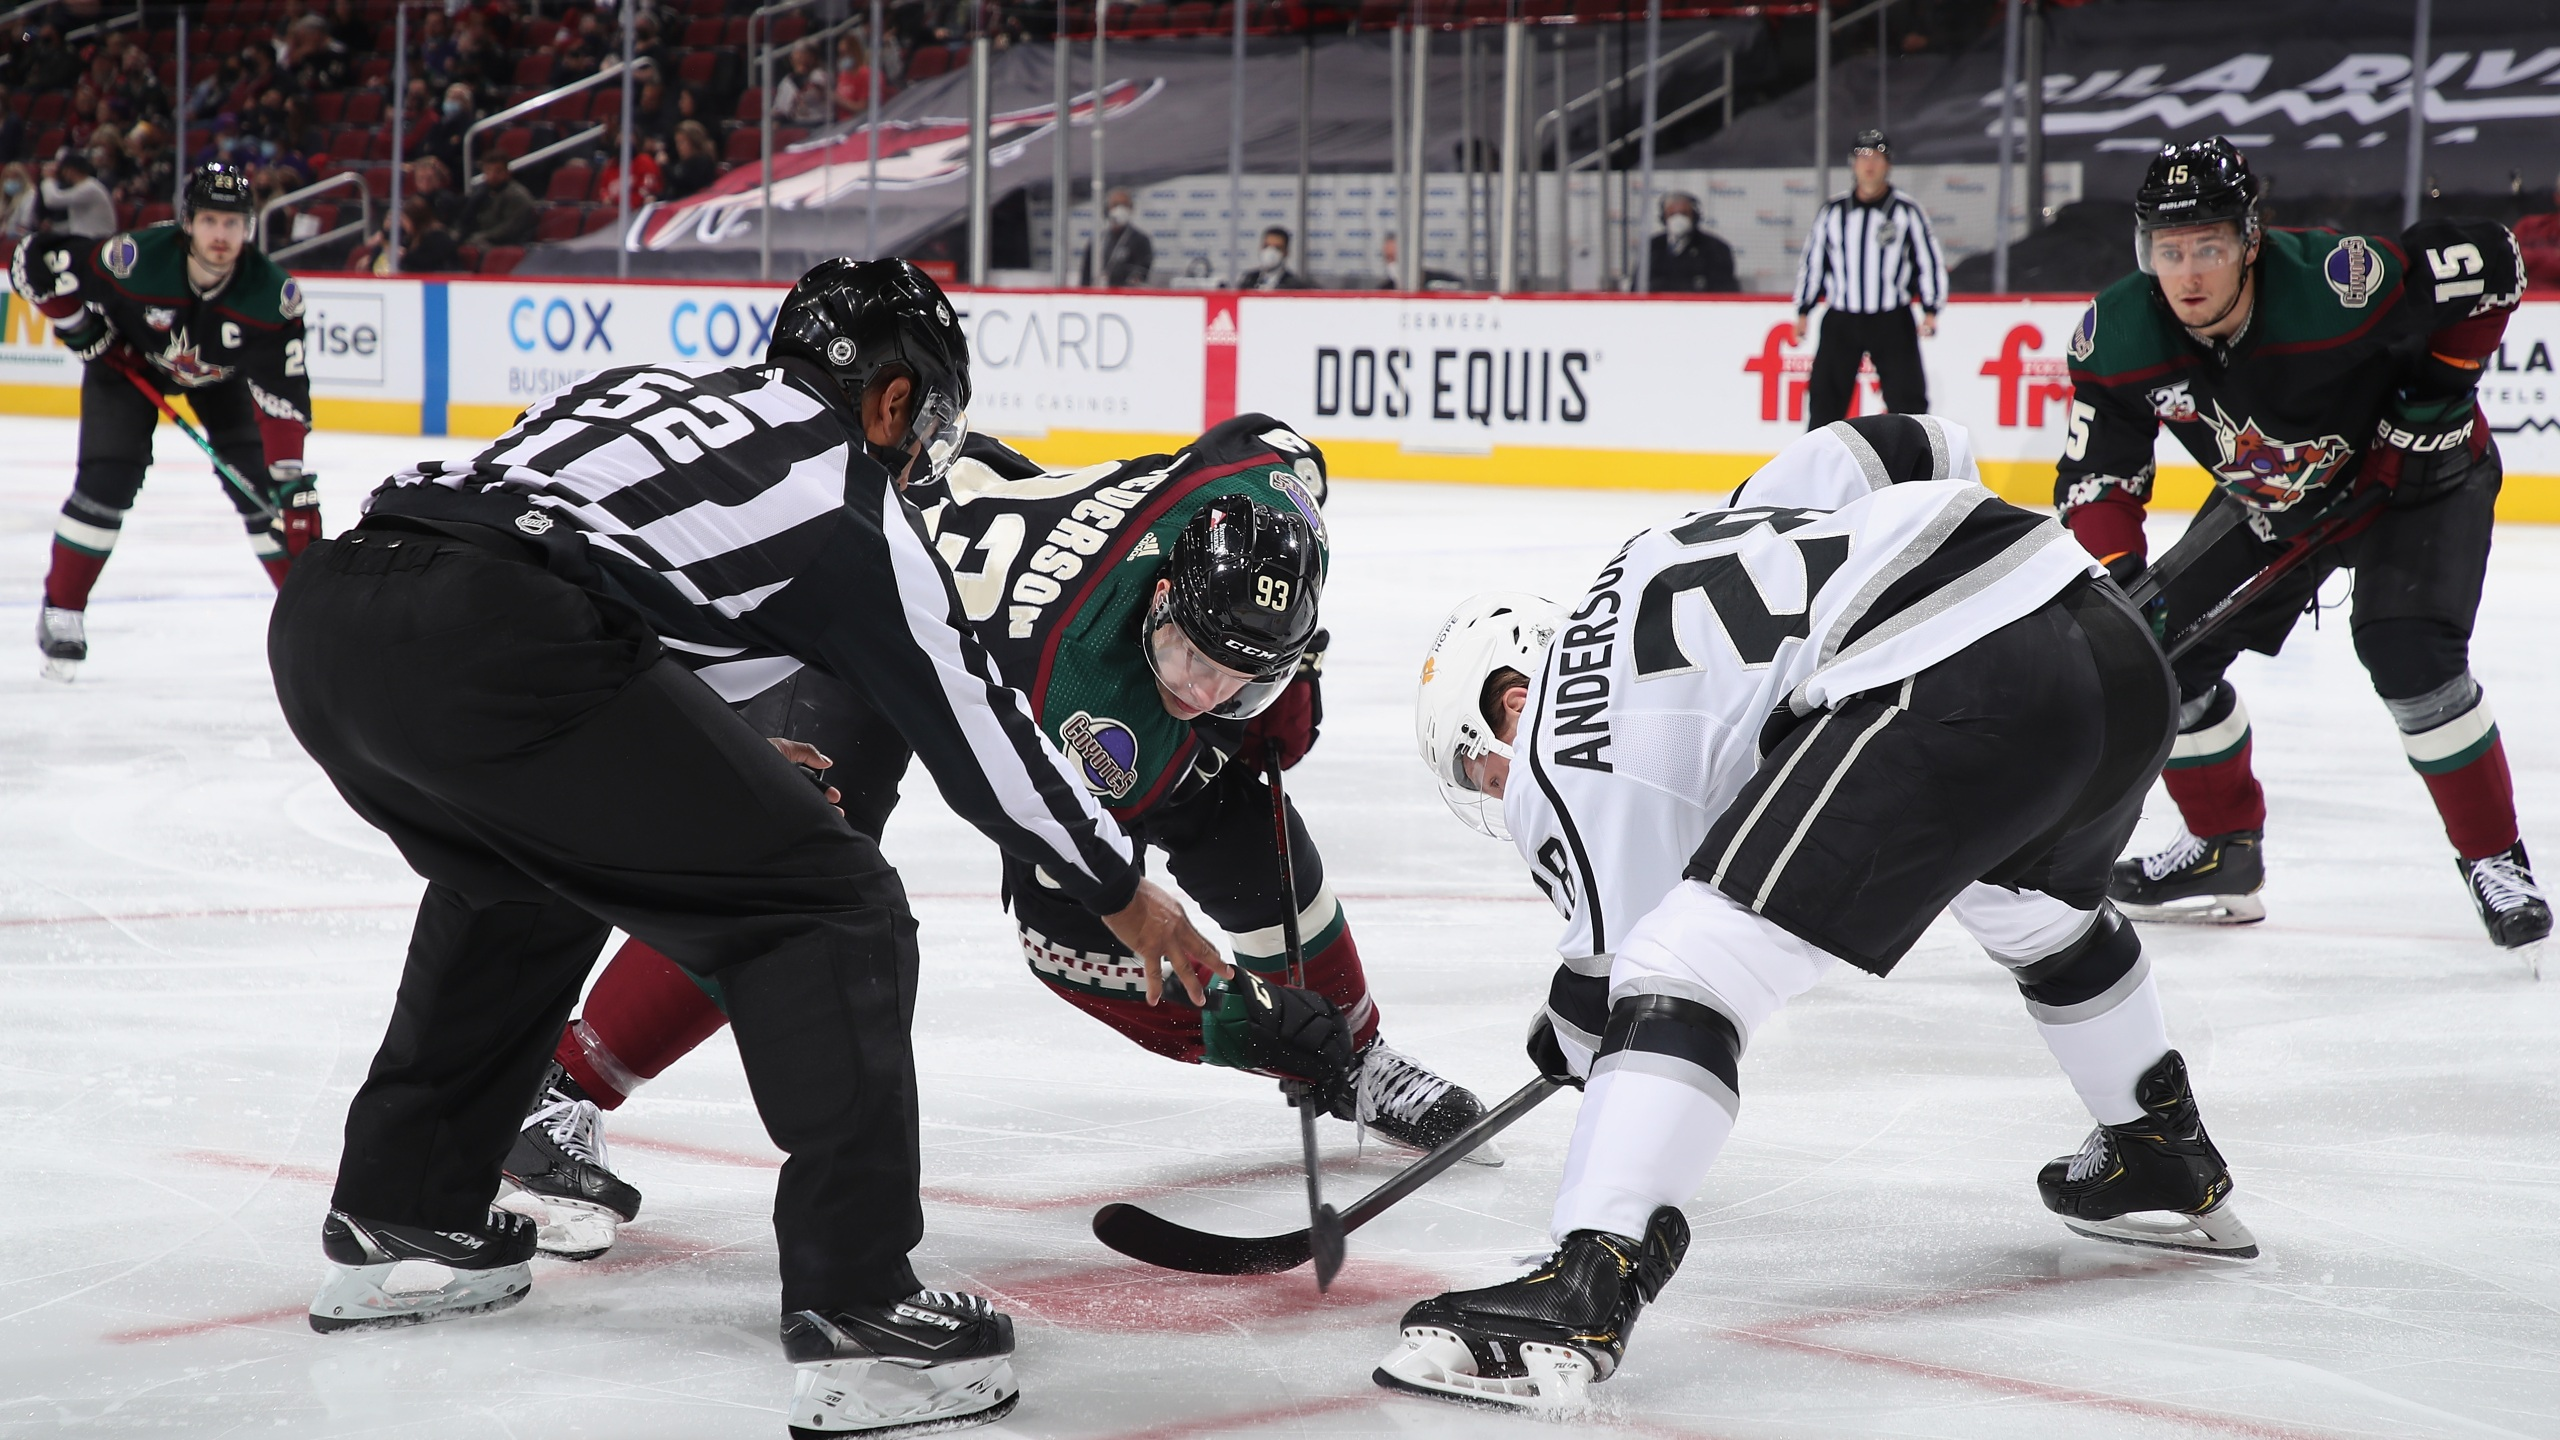 Lane Pederson #93 of the Arizona Coyotes faces off against Jaret Anderson-Dolan #28 of the Los Angeles Kings during the NHL game at Gila River Arena on May 5, 2021, in Glendale, Arizona. The Kings defeated the Coyotes 4-2. (Christian Petersen/Getty Images)